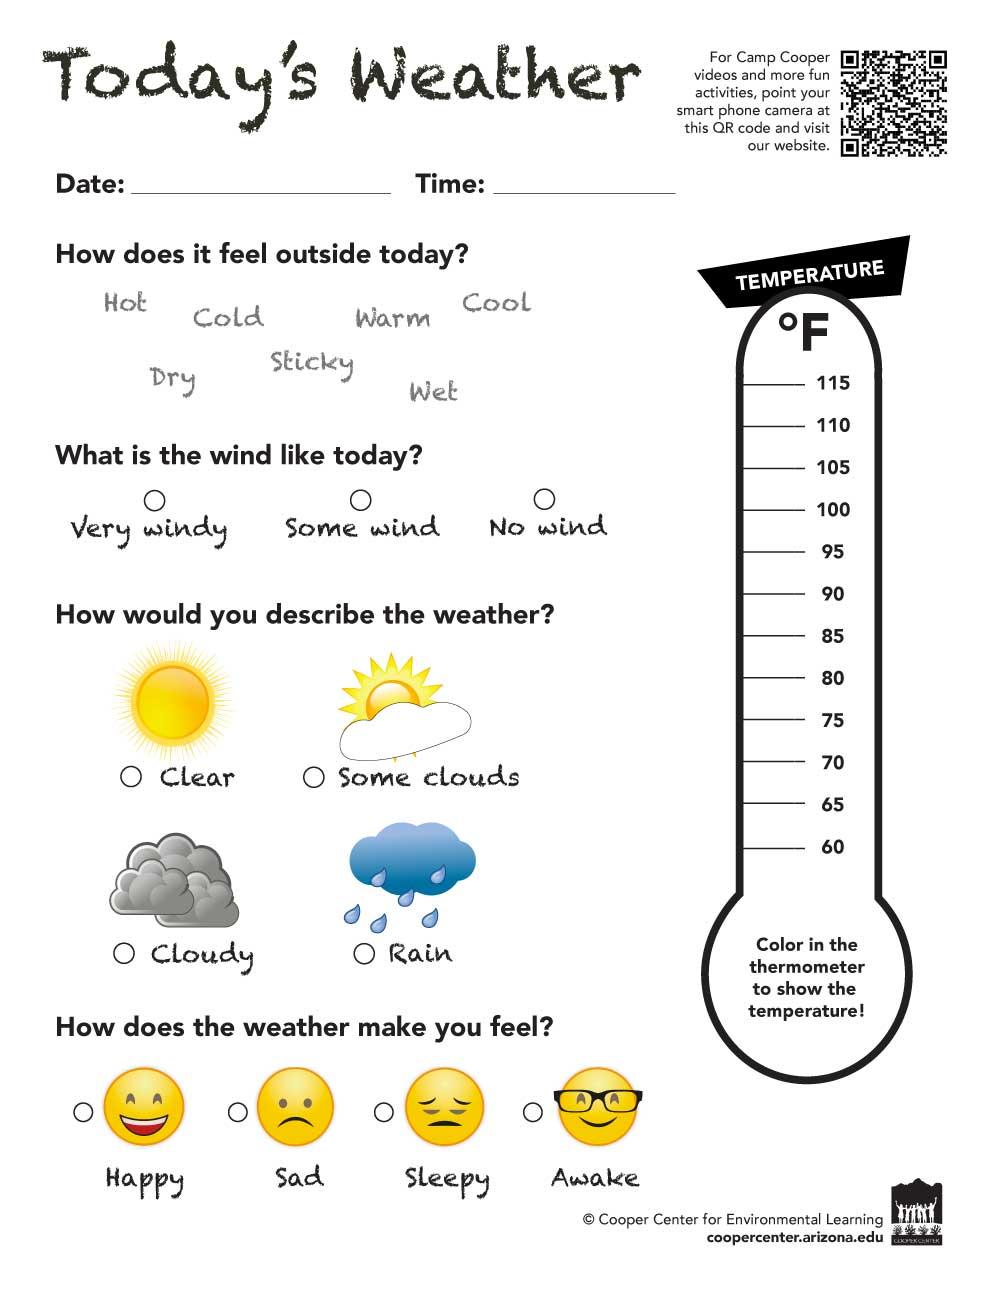 medium resolution of Weather Wise - Camp Cooper Online Environmental Learning Activites for K - 5th  Grade   Cooper Center